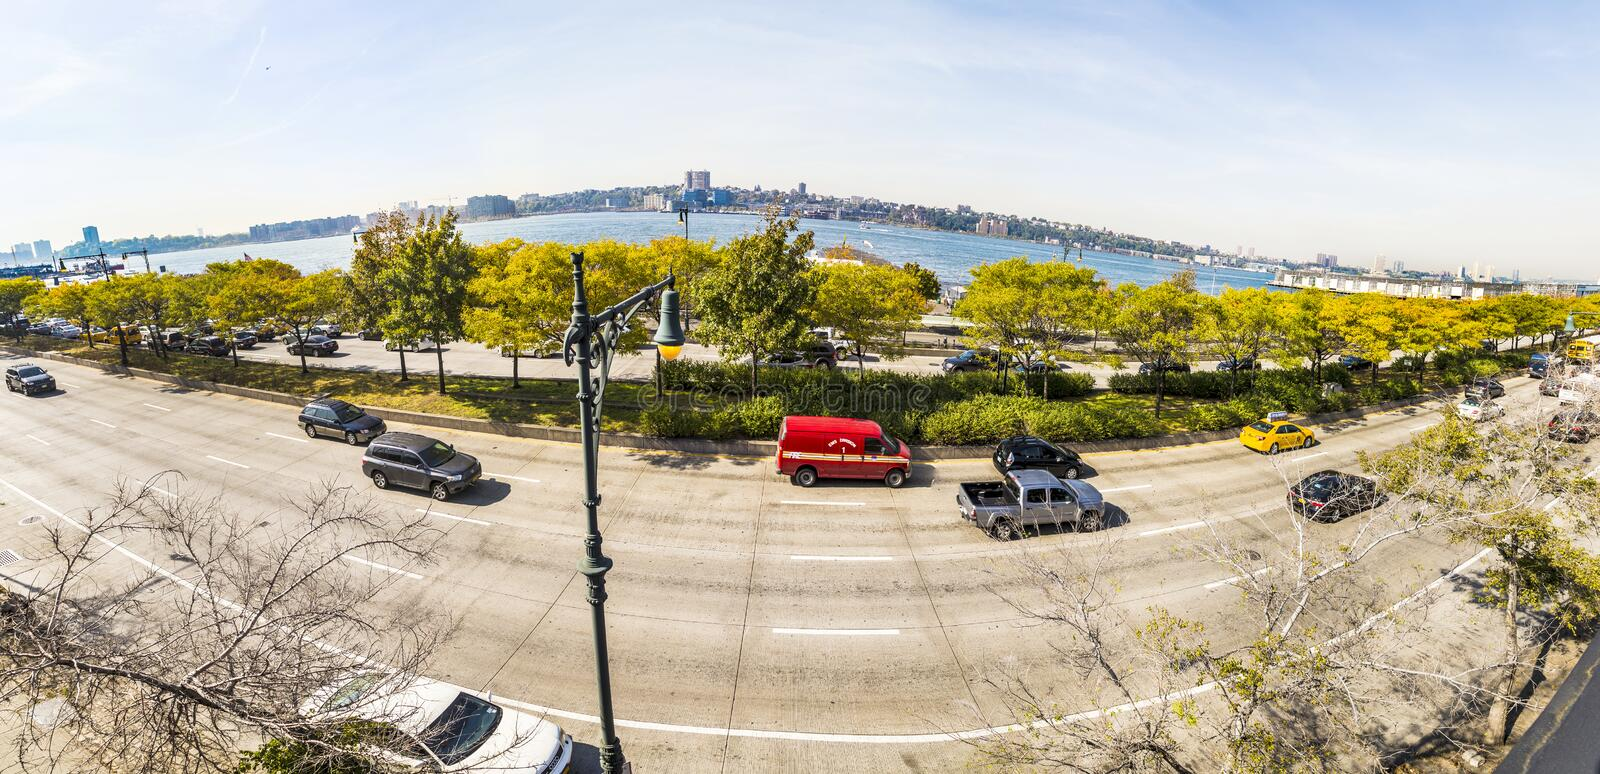 street view to 12th avenue and river Hudson river in the neighborhood Midtown in New York stock image